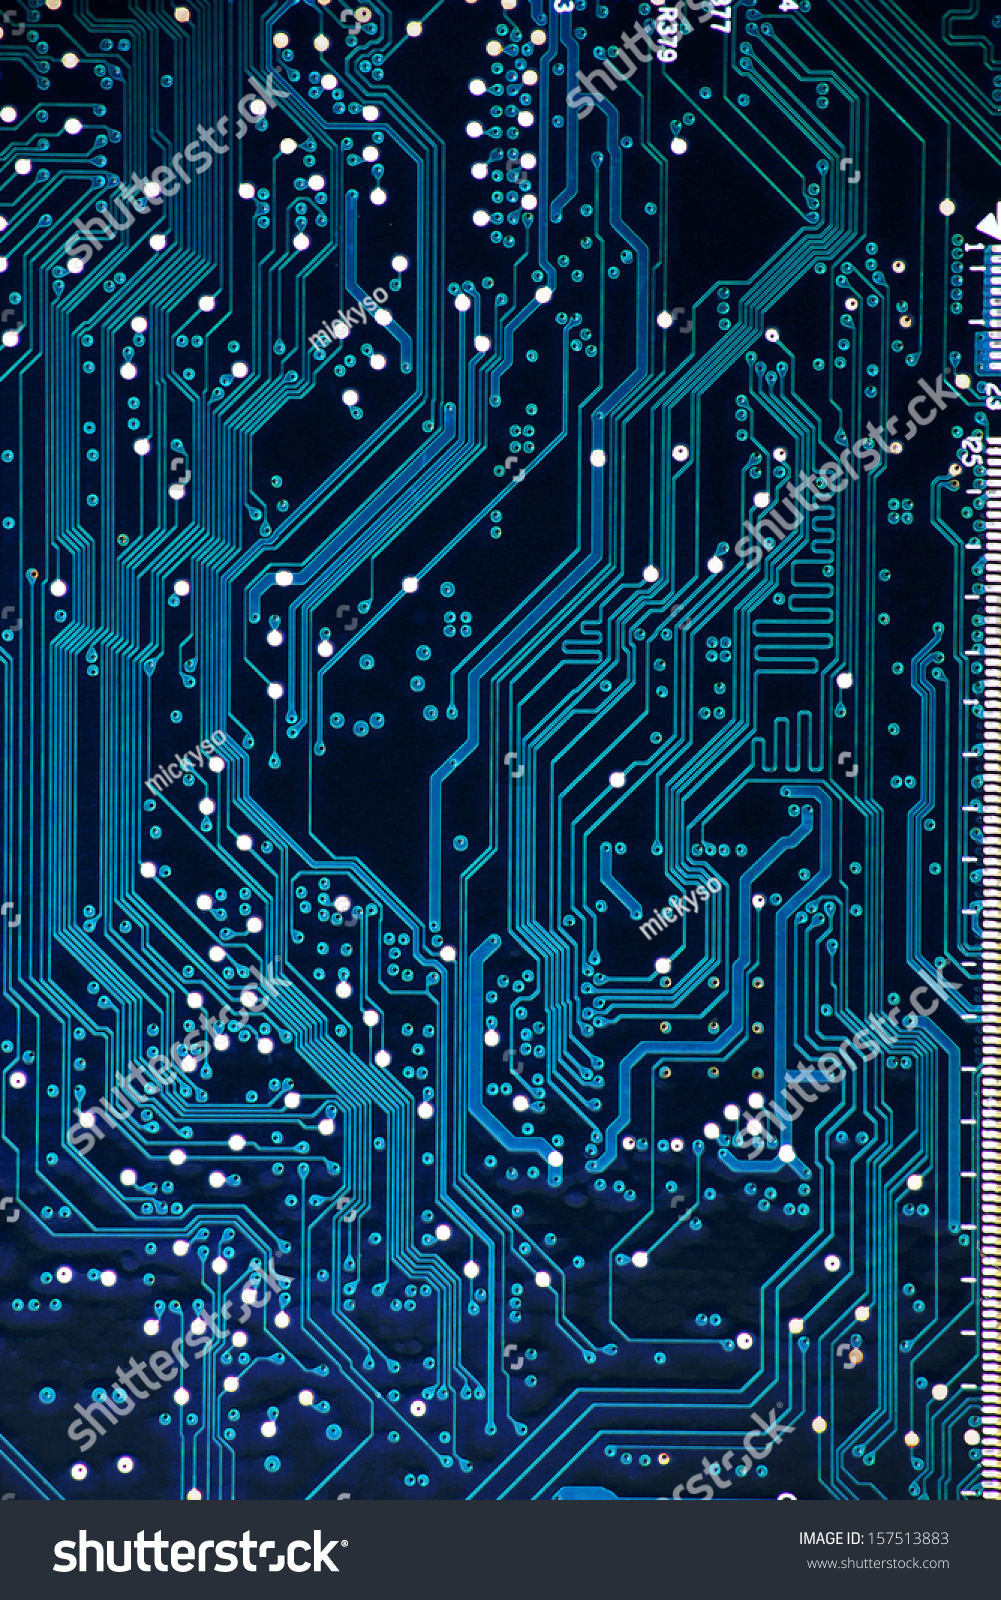 Printed Circuit Board Red Stock Image Auto Electrical Wiring Diagram Images 7251734 Photo 157513883